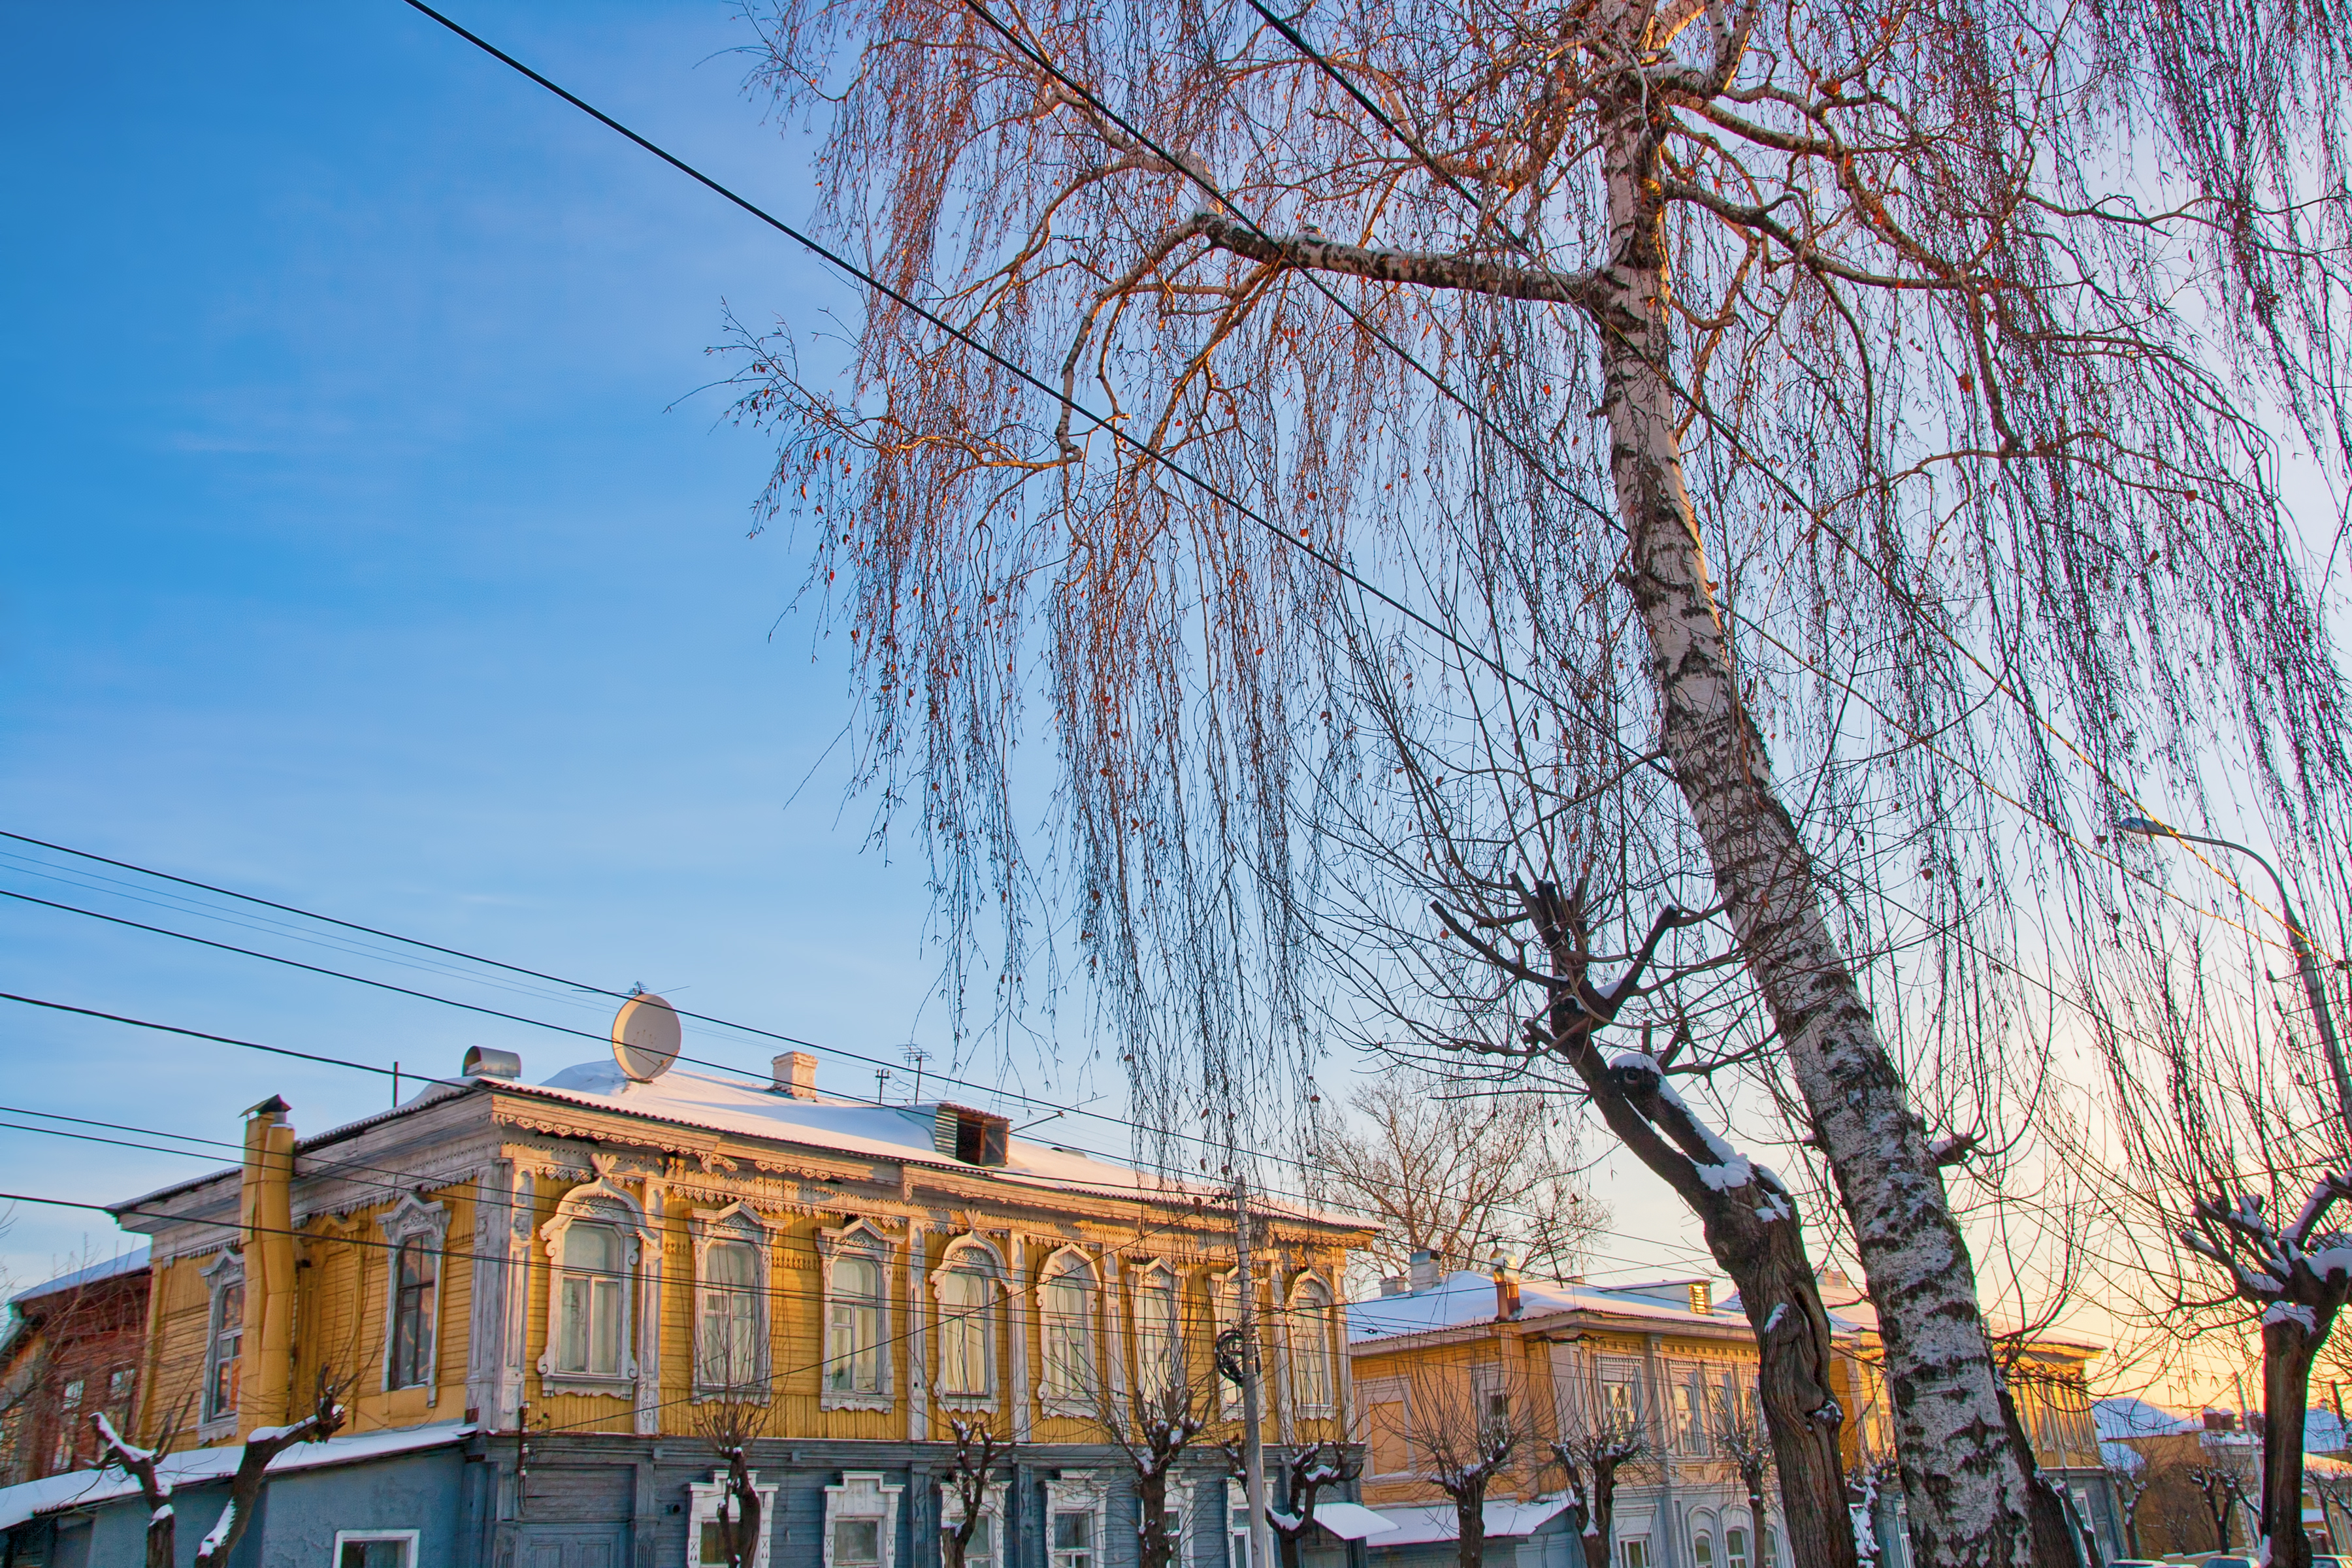 Birch on the street, Aged, Residence, Vintage, Ufa, HQ Photo